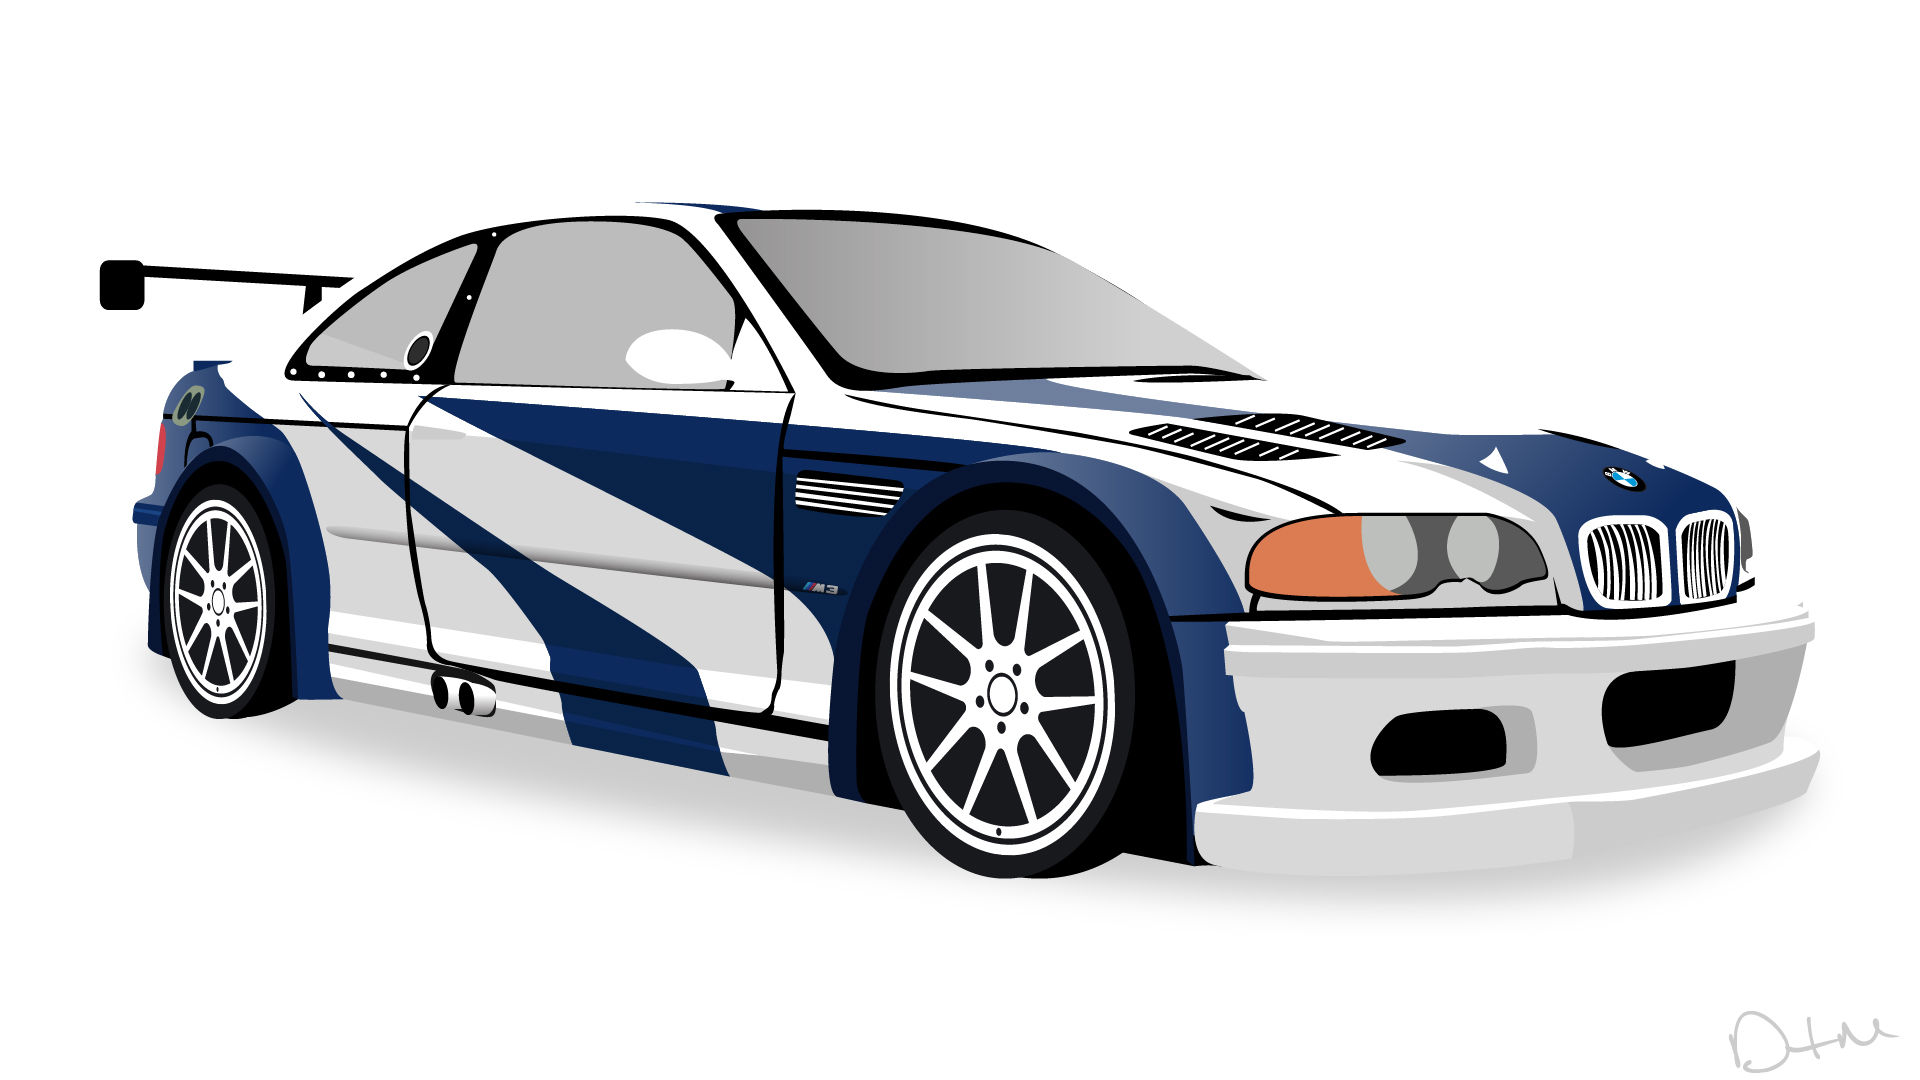 nfs most wanted 2005 bmw m3 gtr vector by dastrontm on. Black Bedroom Furniture Sets. Home Design Ideas